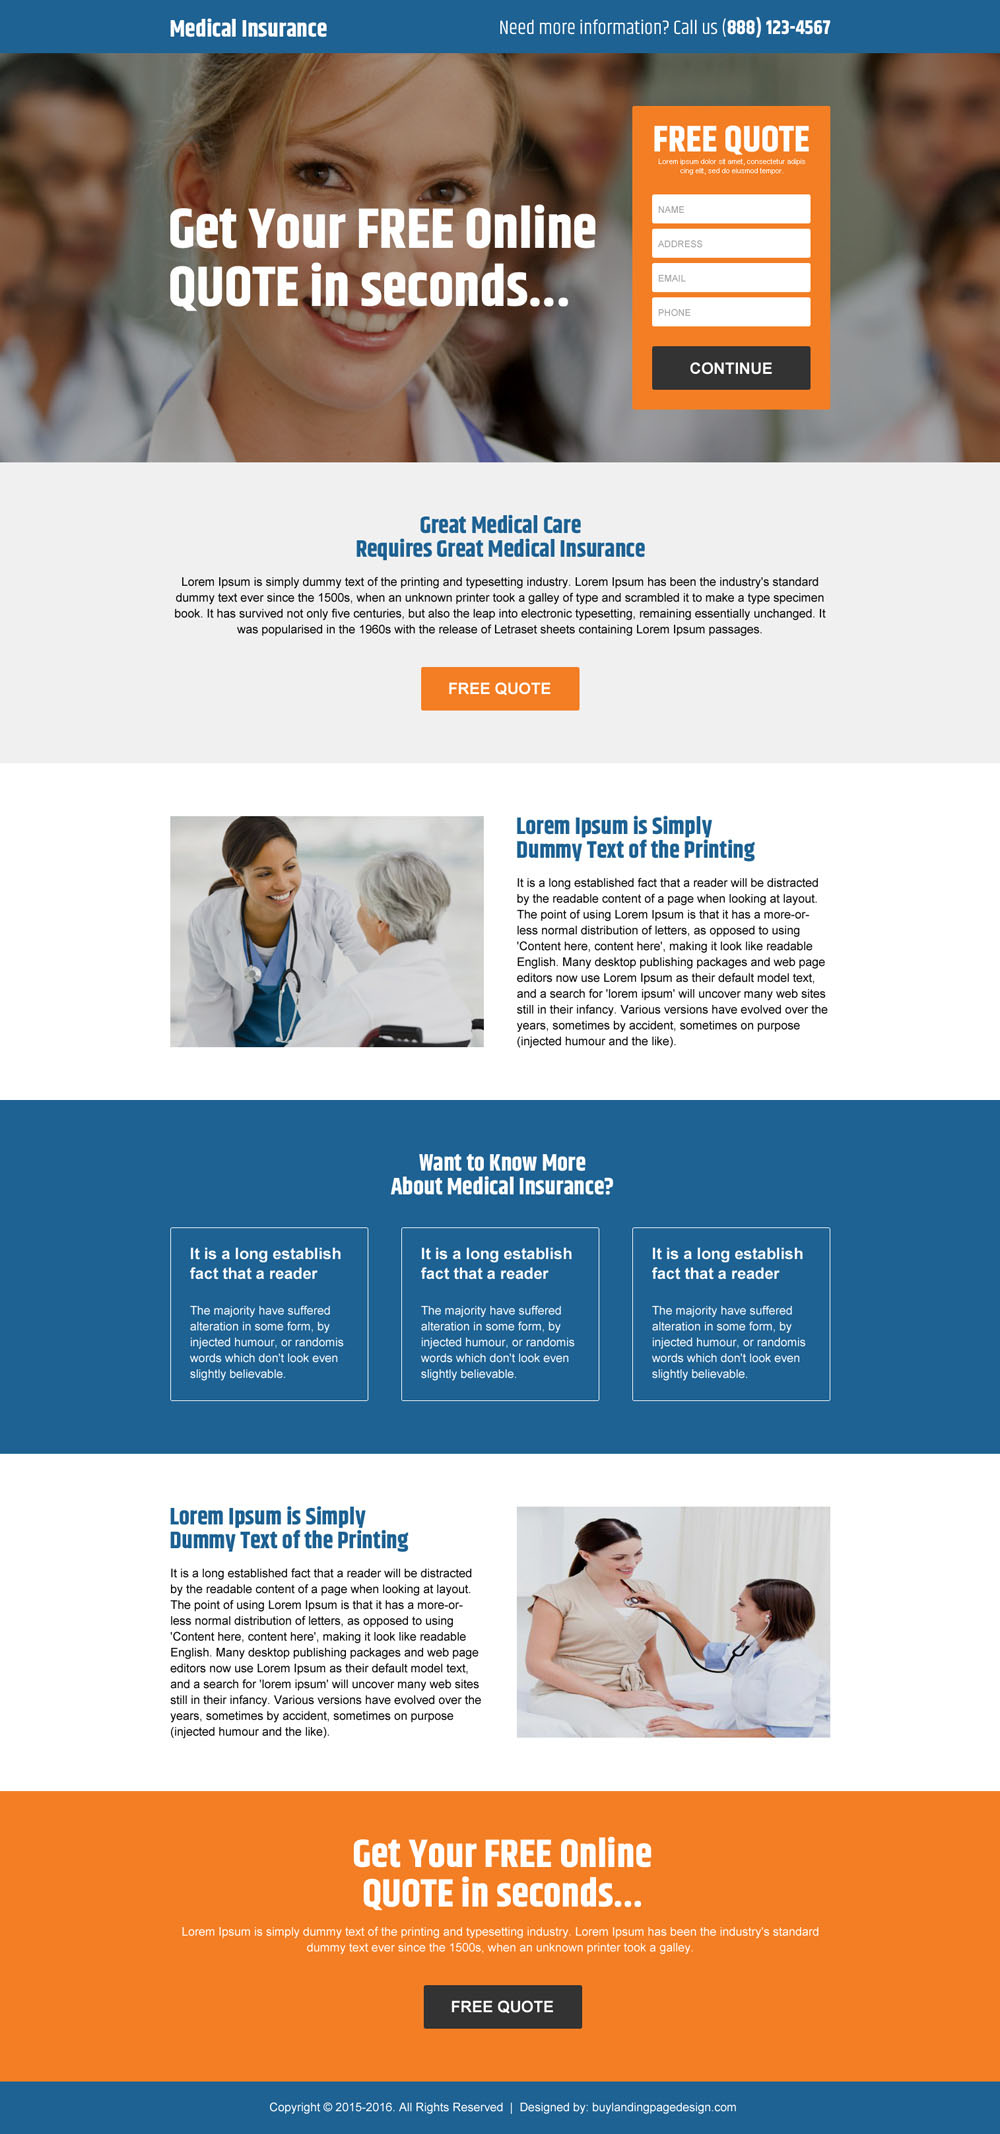 free-online-medical-insurance-quote-service-lead-gen-landing-page-design-002